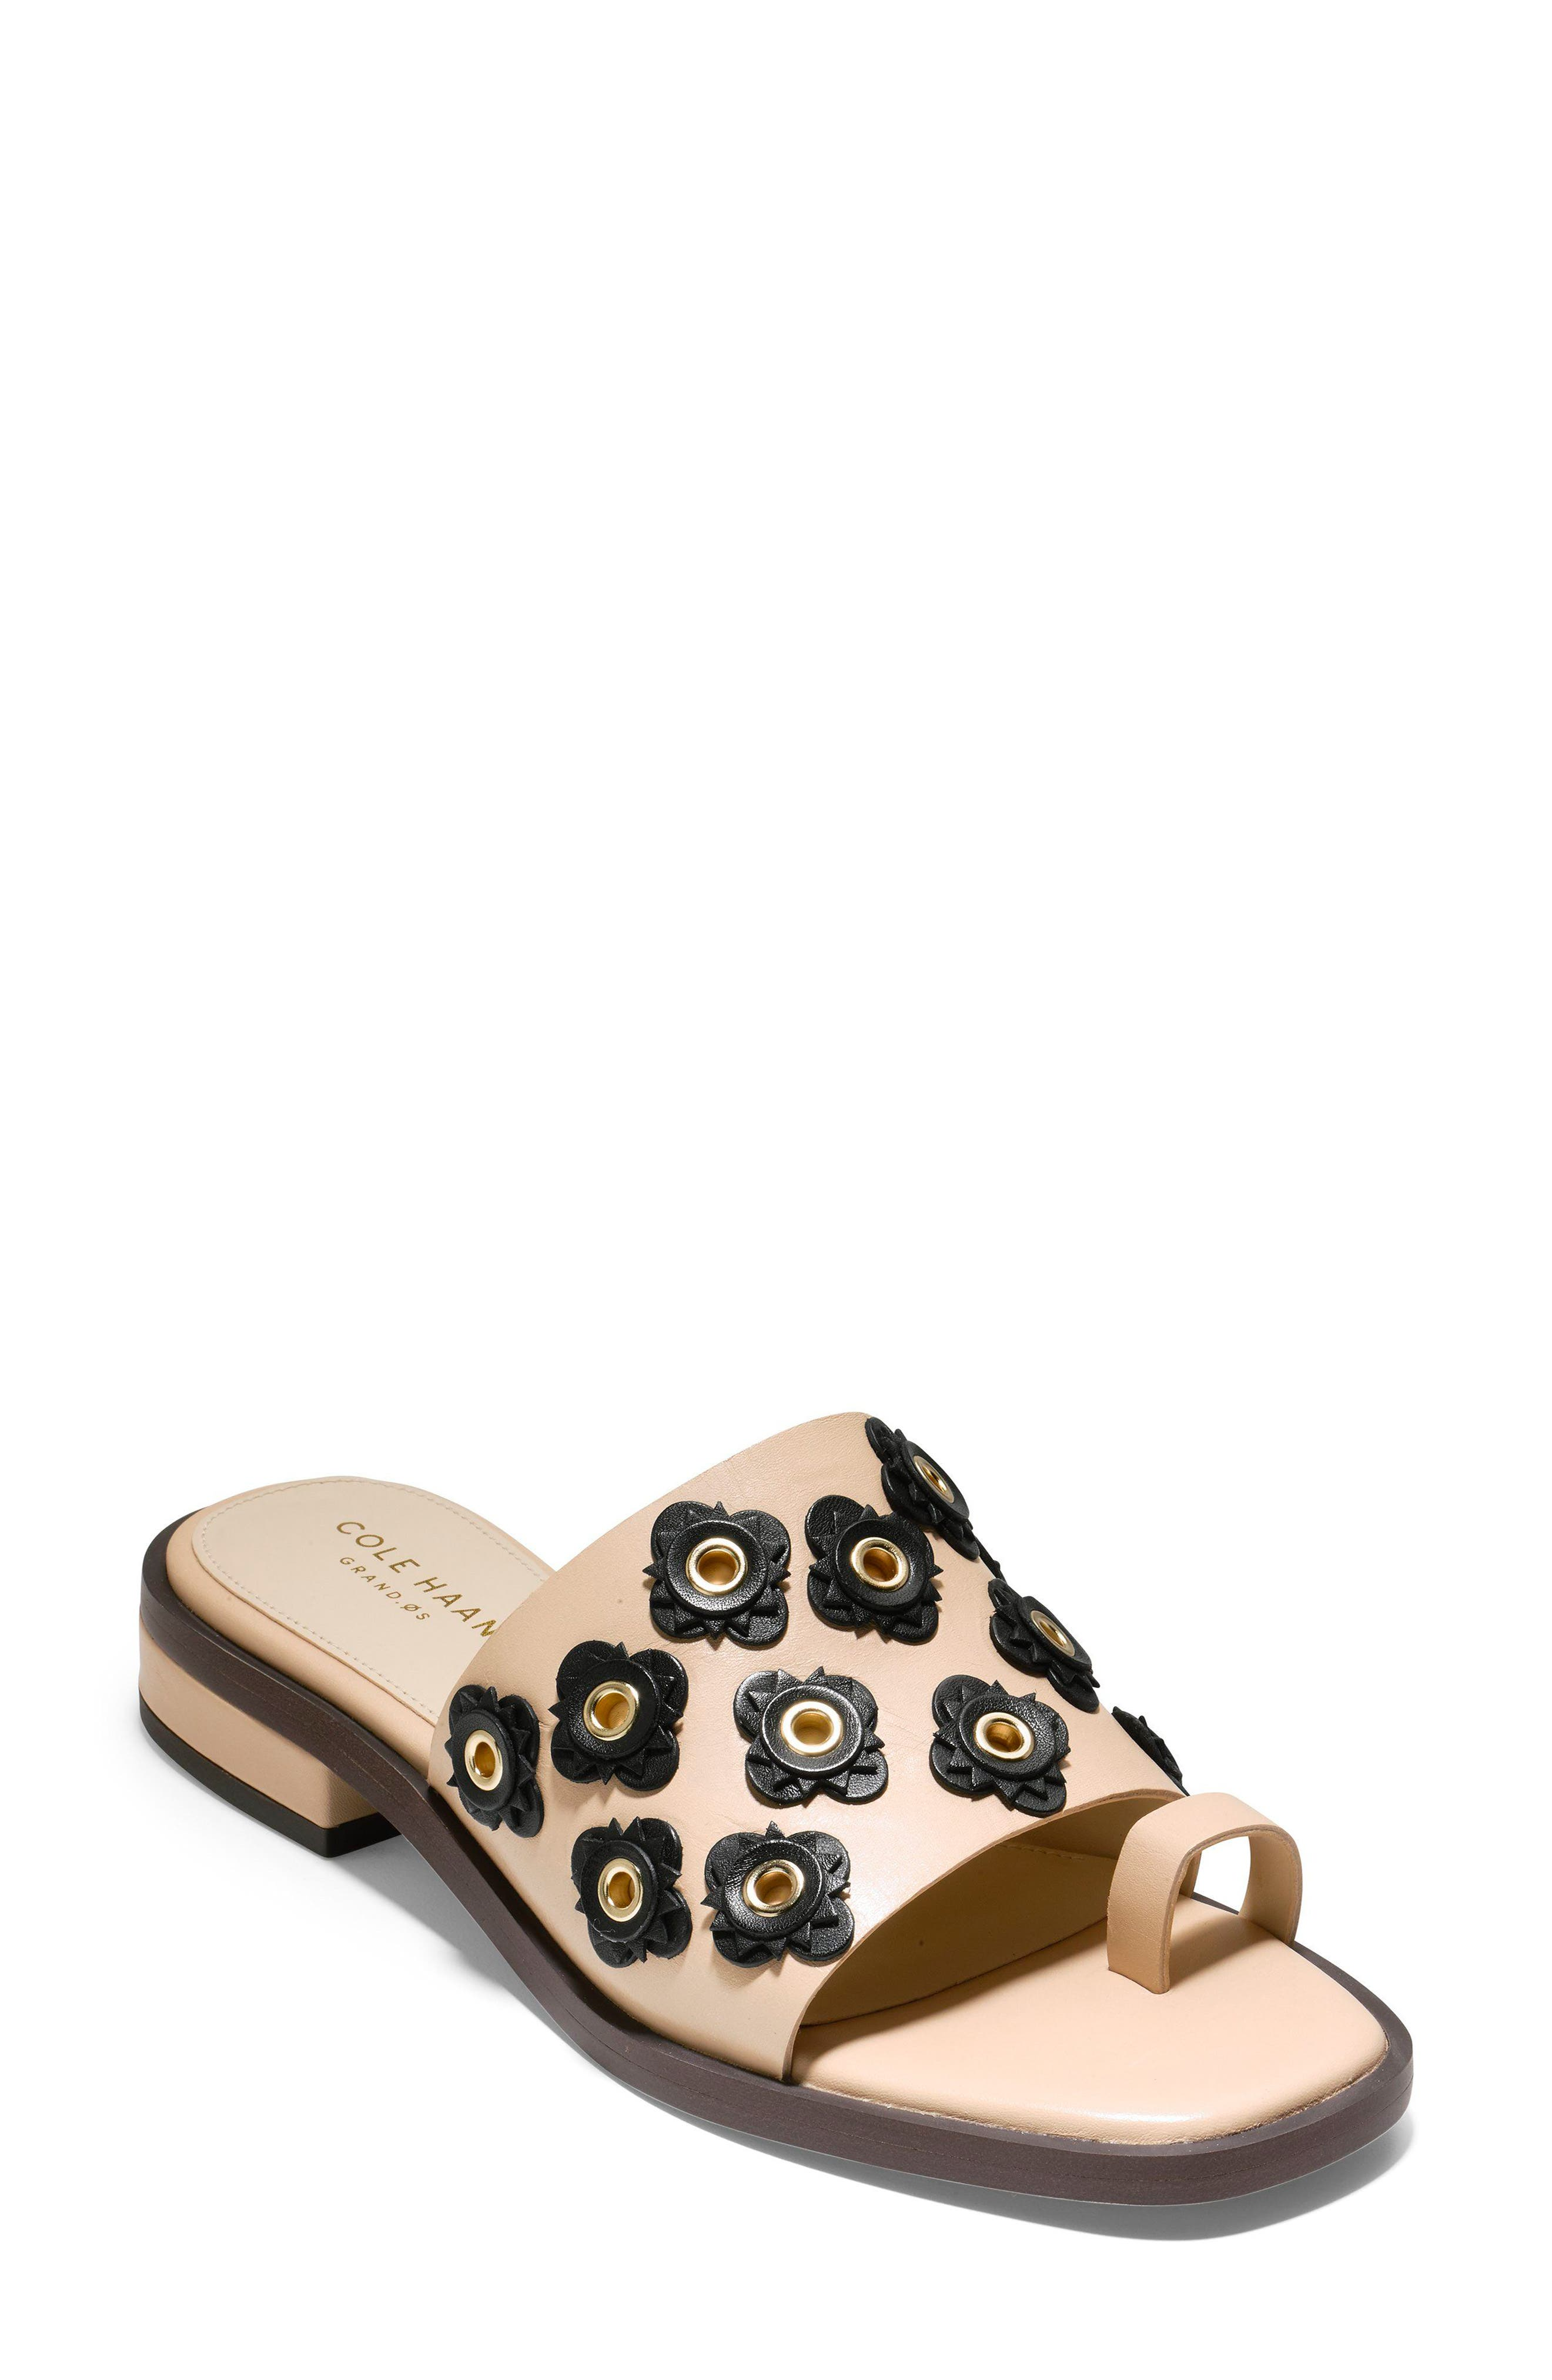 Cole Haan Carly Floral Sandal B - Beige